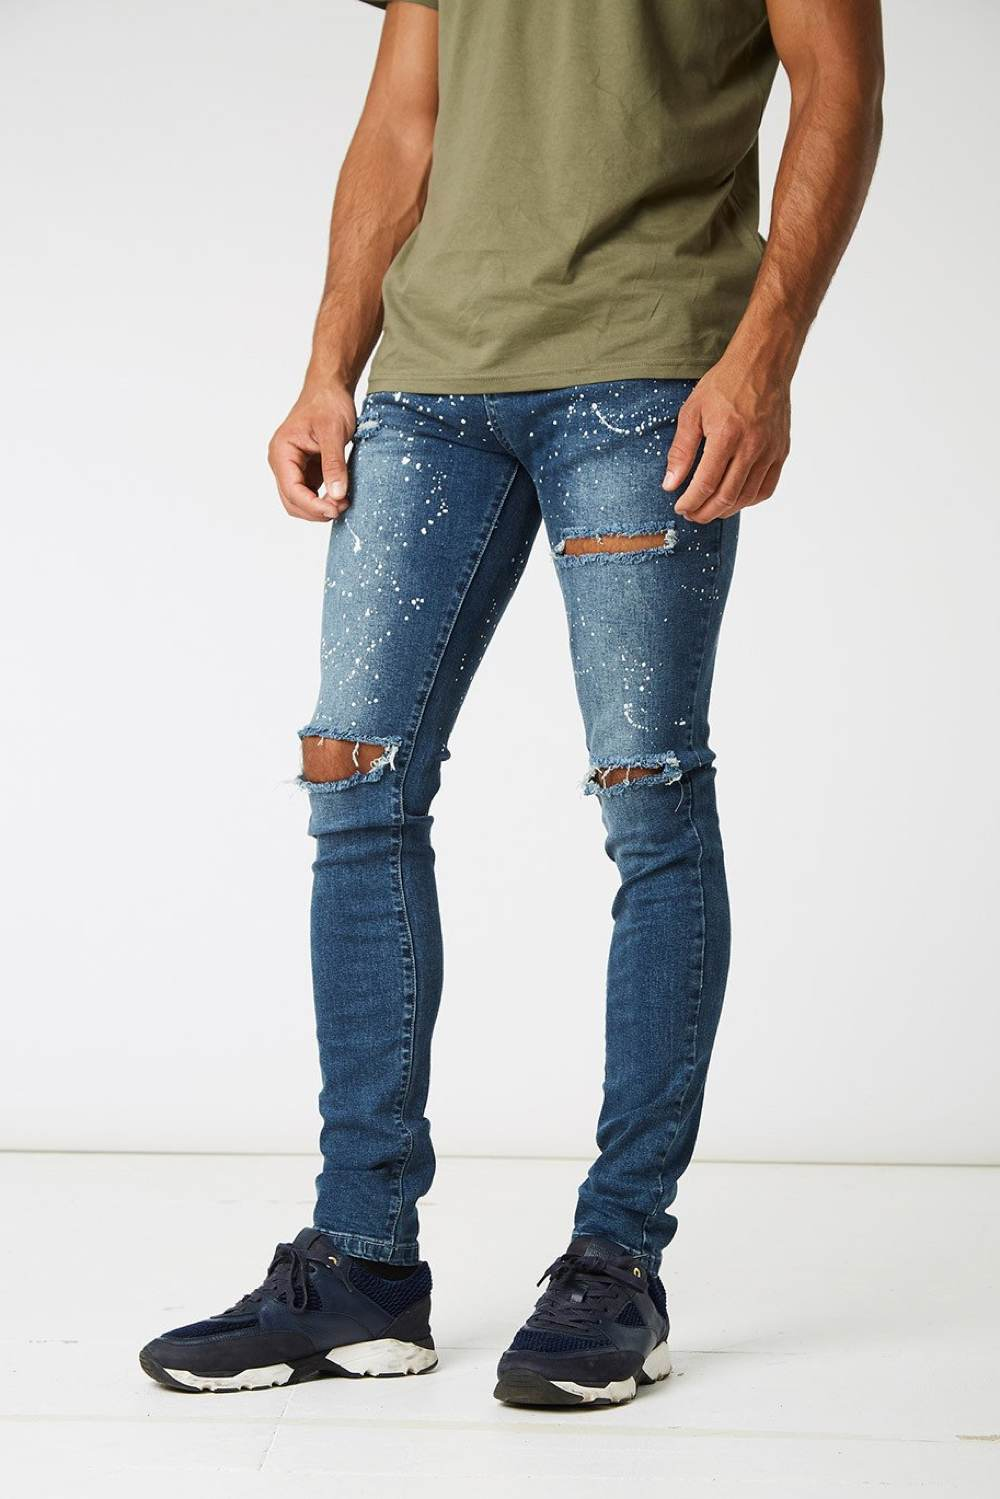 Section Clo Monet Paint Splash Ripped Jeans - Blue - 1